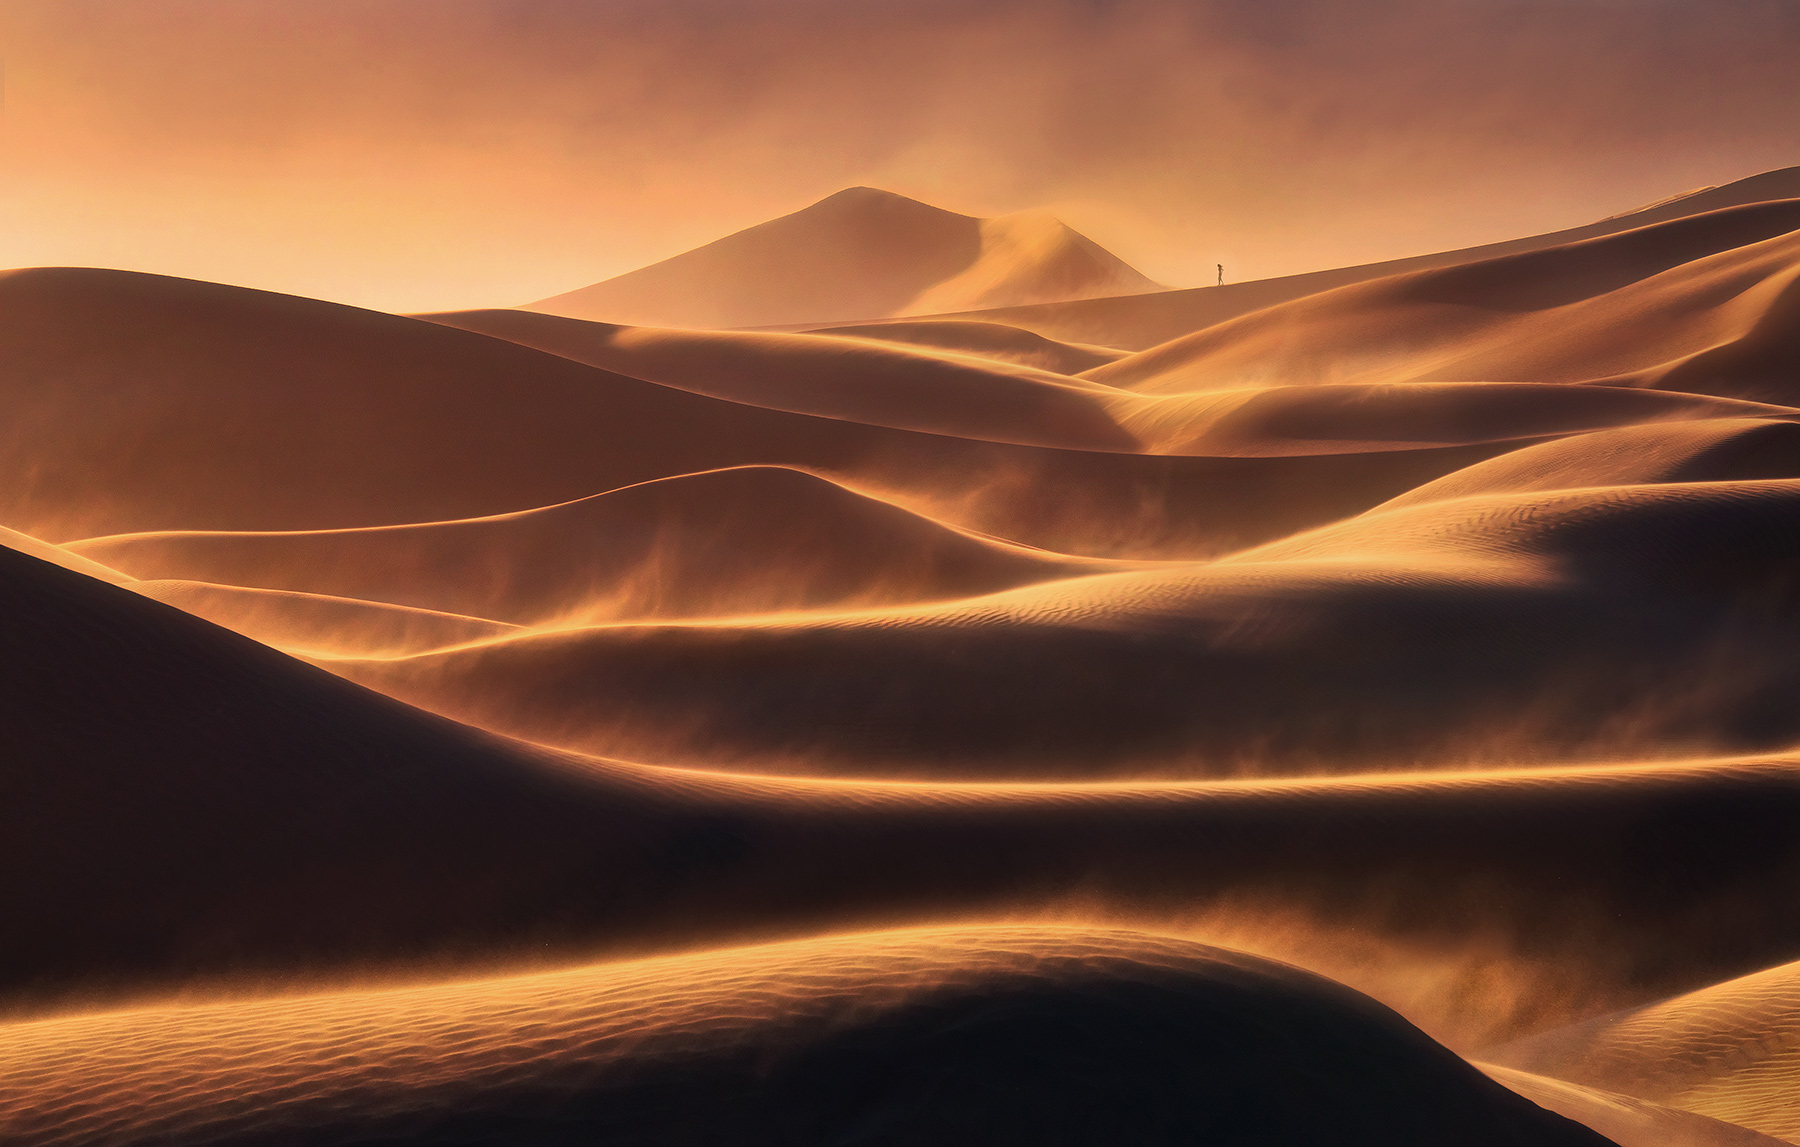 Dunes, sunset, death valley, lone, person, blowing, windstorm, wind, photo